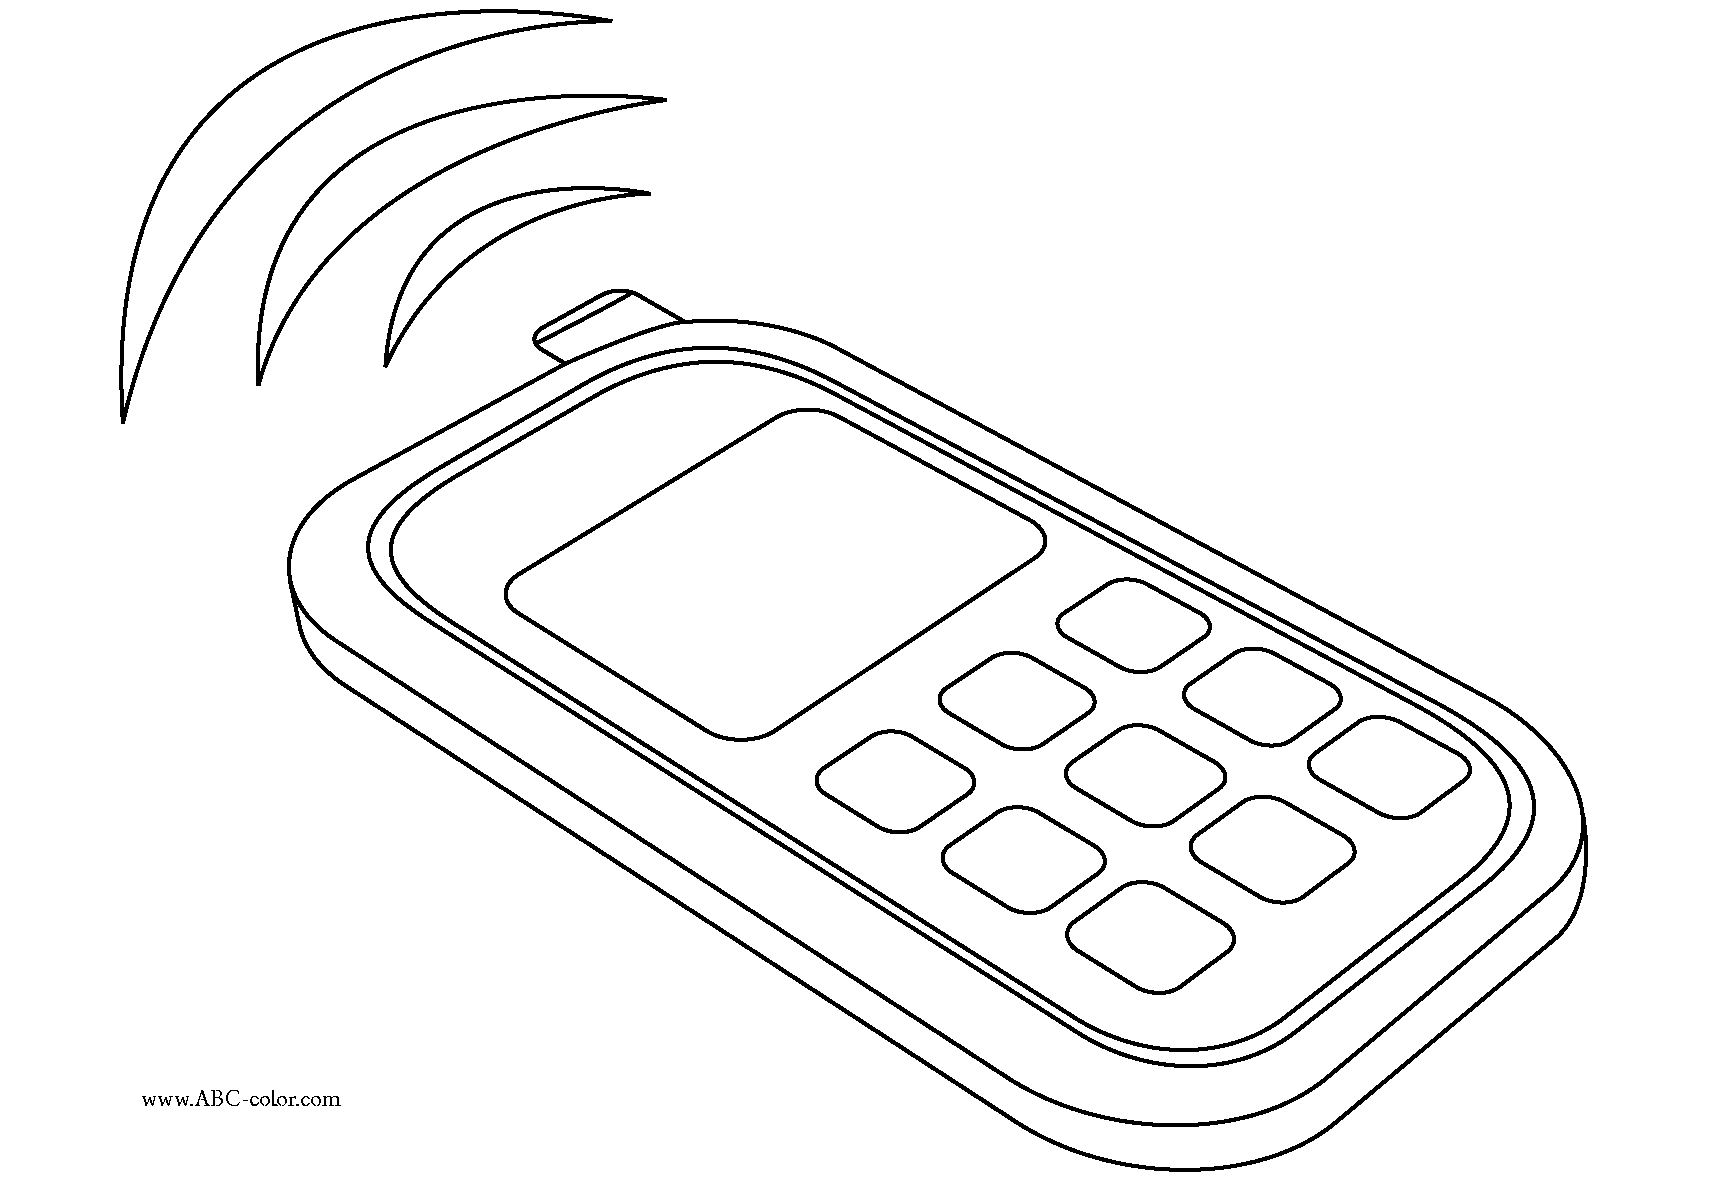 Cell Phone Coloring Page Coloring Home Cell Phone Coloring Pages